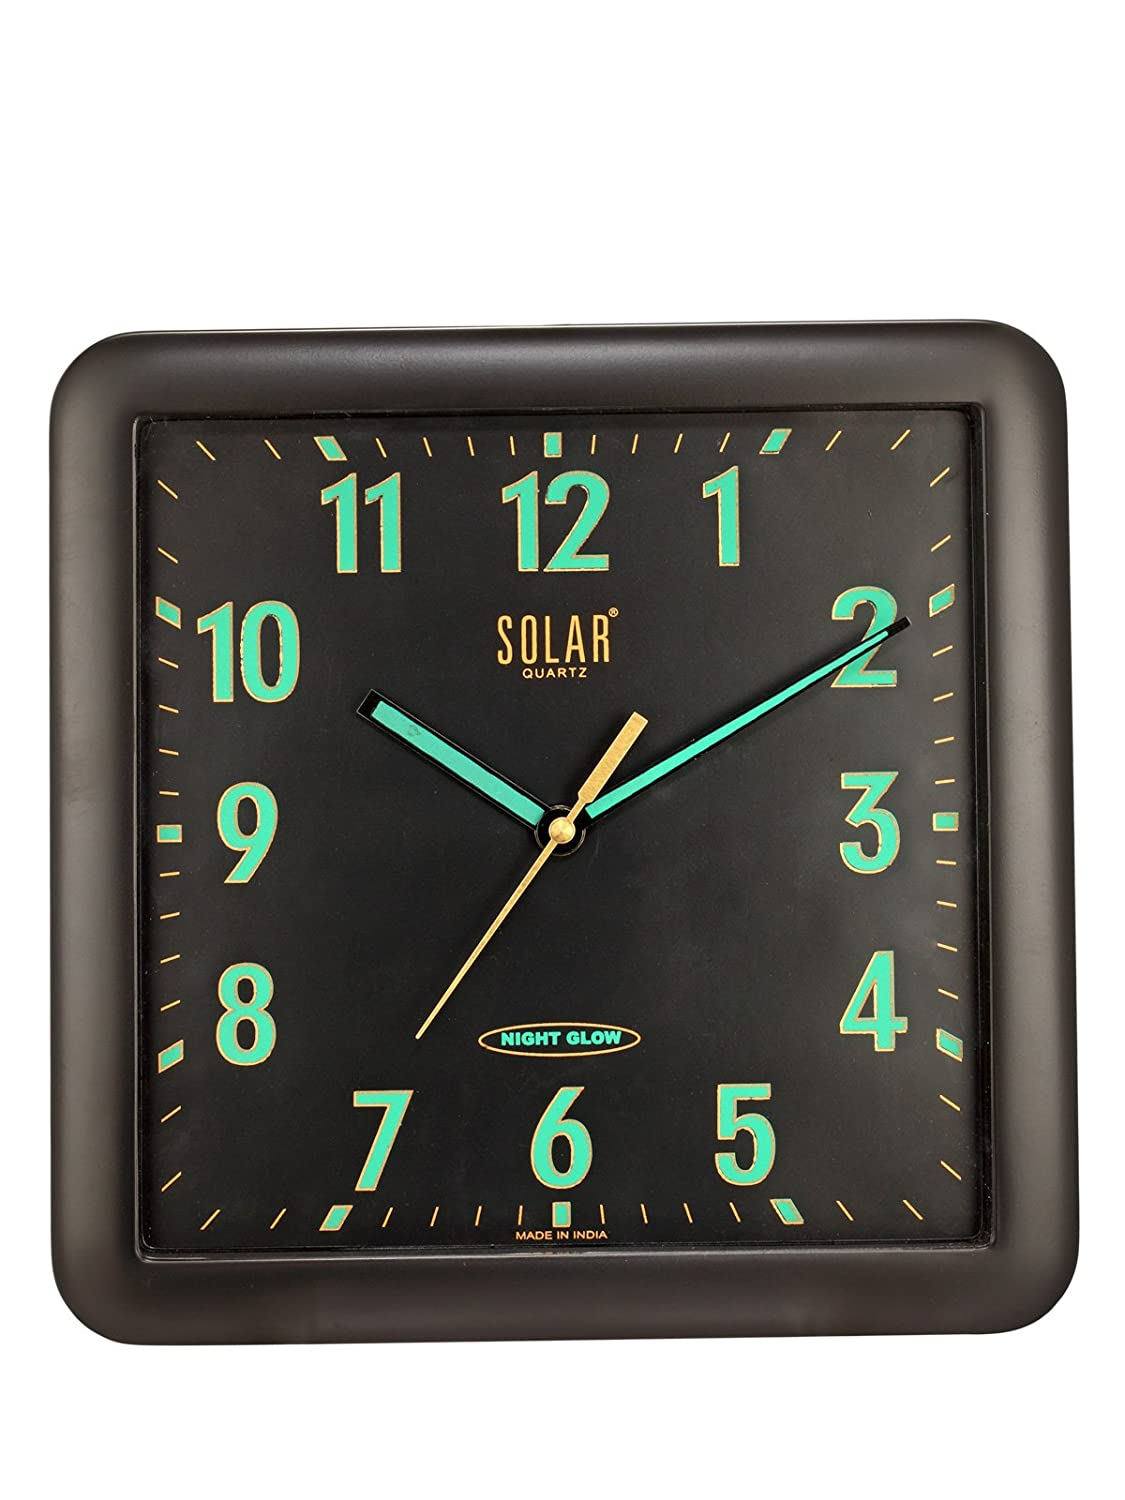 Solar night glow plastic wall clock 29 cm x 29 cm x 5 cm white solar night glow plastic wall clock 29 cm x 29 cm x 5 cm white amazon home kitchen amipublicfo Images